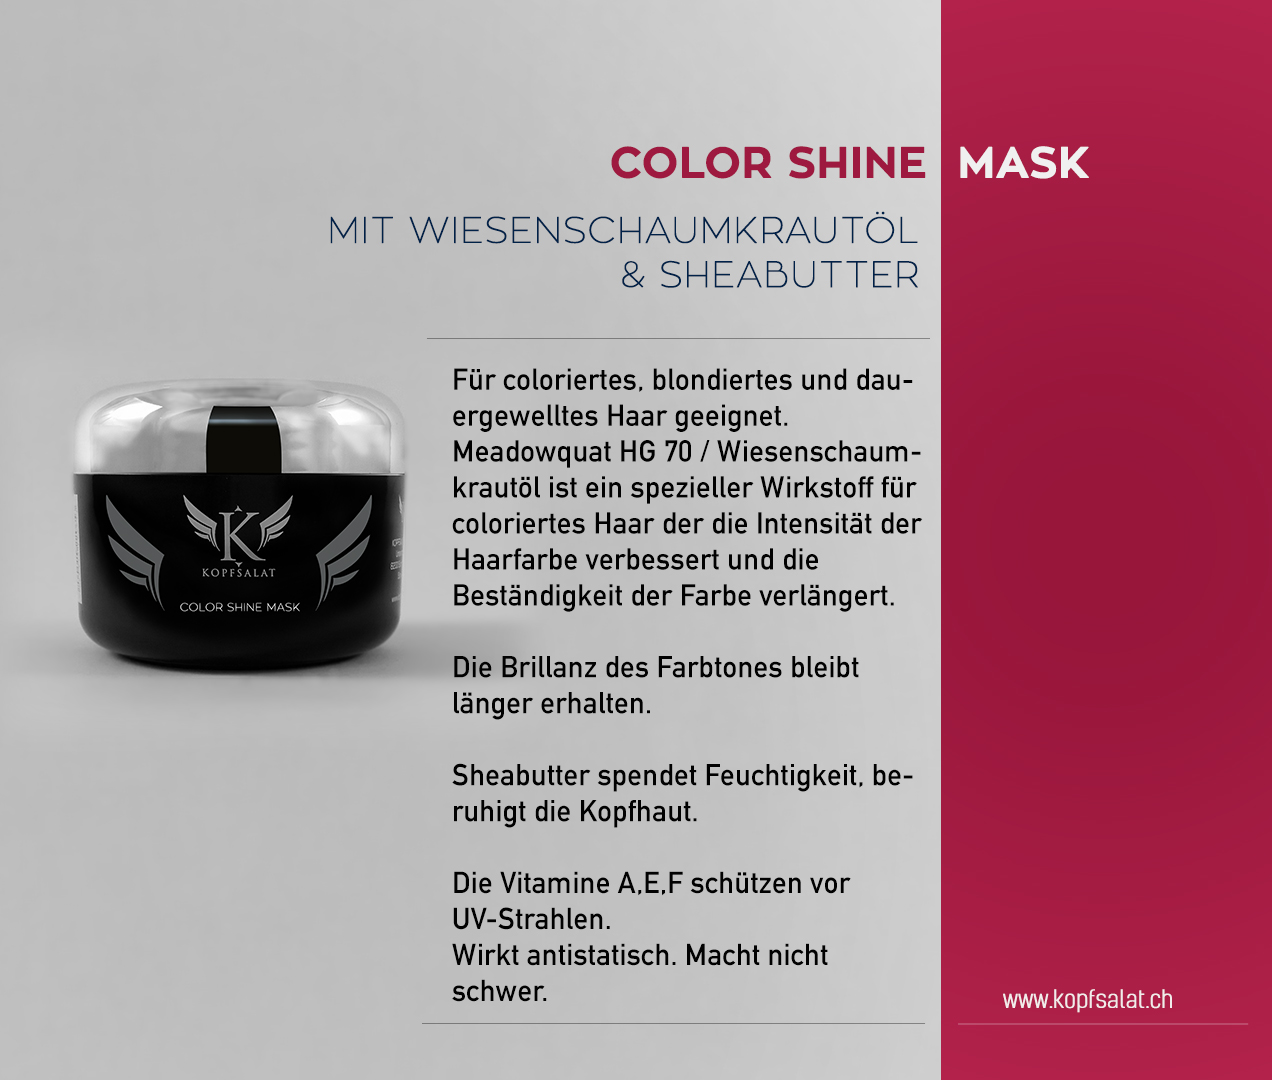 2 color shine mask